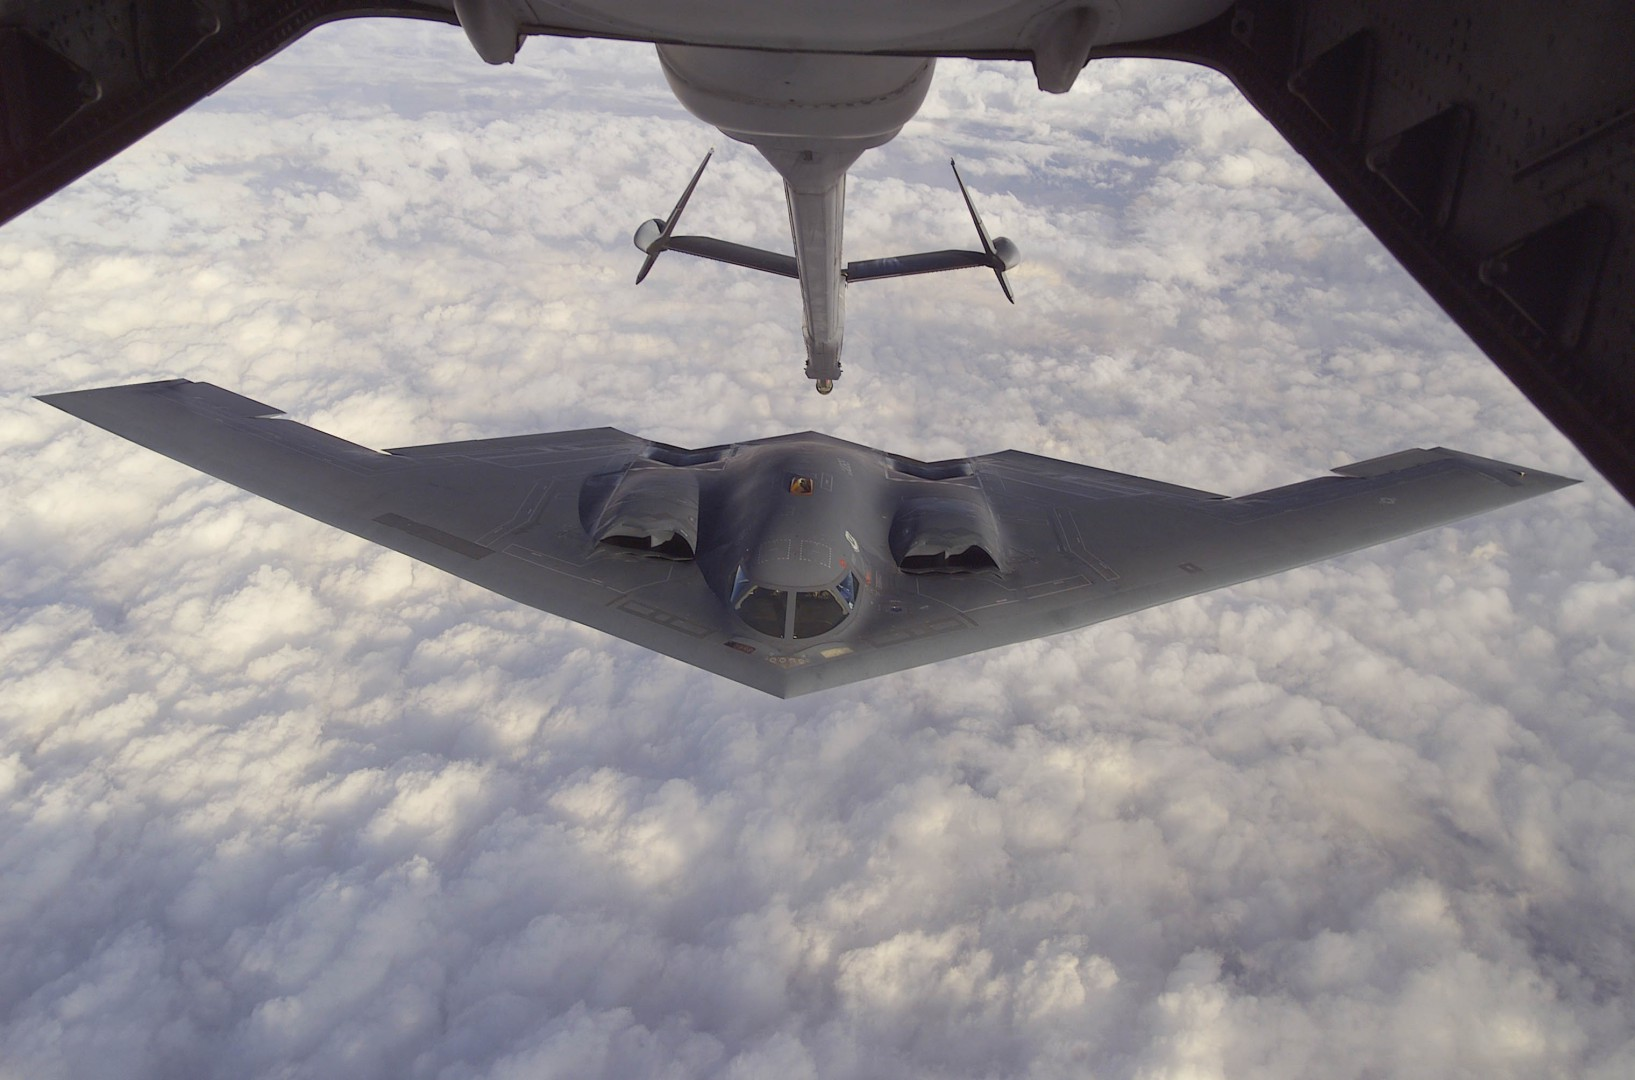 """The B-2 Spirit approaches the boom of a McGuire Air Force Base, New Jersey KC-10A Extender during a Capstone orientation flight. Capstone is a Joint Airborne/Air Transportability Training mission providing interservice training for the wartime application of airlift. Through Capstone, senior level officers are able to observe the significance of airlift and its role in all military operations. The B-2 Spirit is a multi-role bomber capable of delivering both conventional and nuclear munitions. It is a dramatic leap forward in technology and represents a major milestone in the U.S. bomber modernization program. The B-2 brings massive firepower to bear, in a short time, anywhere on the globe through previously impenetrable defenses. The B-2 provides the penetrating flexibility and effectiveness inherent in manned bombers. Its low-observable, or """"stealth,"""" characteristics give it the unique ability to penetrate an enemy's most sophisticated defenses and threaten its most valued, and heavily defended, targets. The B-2's low-observability provides it greater freedom of action at high altitudes, thus increasing its range and a better field of view for the aircraft's sensors. Its capability to penetrate air defenses and threaten effective retaliation provide a strong, effective deterrent and combat force well through the 21st century. The aerial refueling took place aboard a McGuire AFB, New Jersey KC-10A Extender on October 5, 2000. (U.S. Air Force photo by Staff Sgt. Scott H. Spitzer)"""